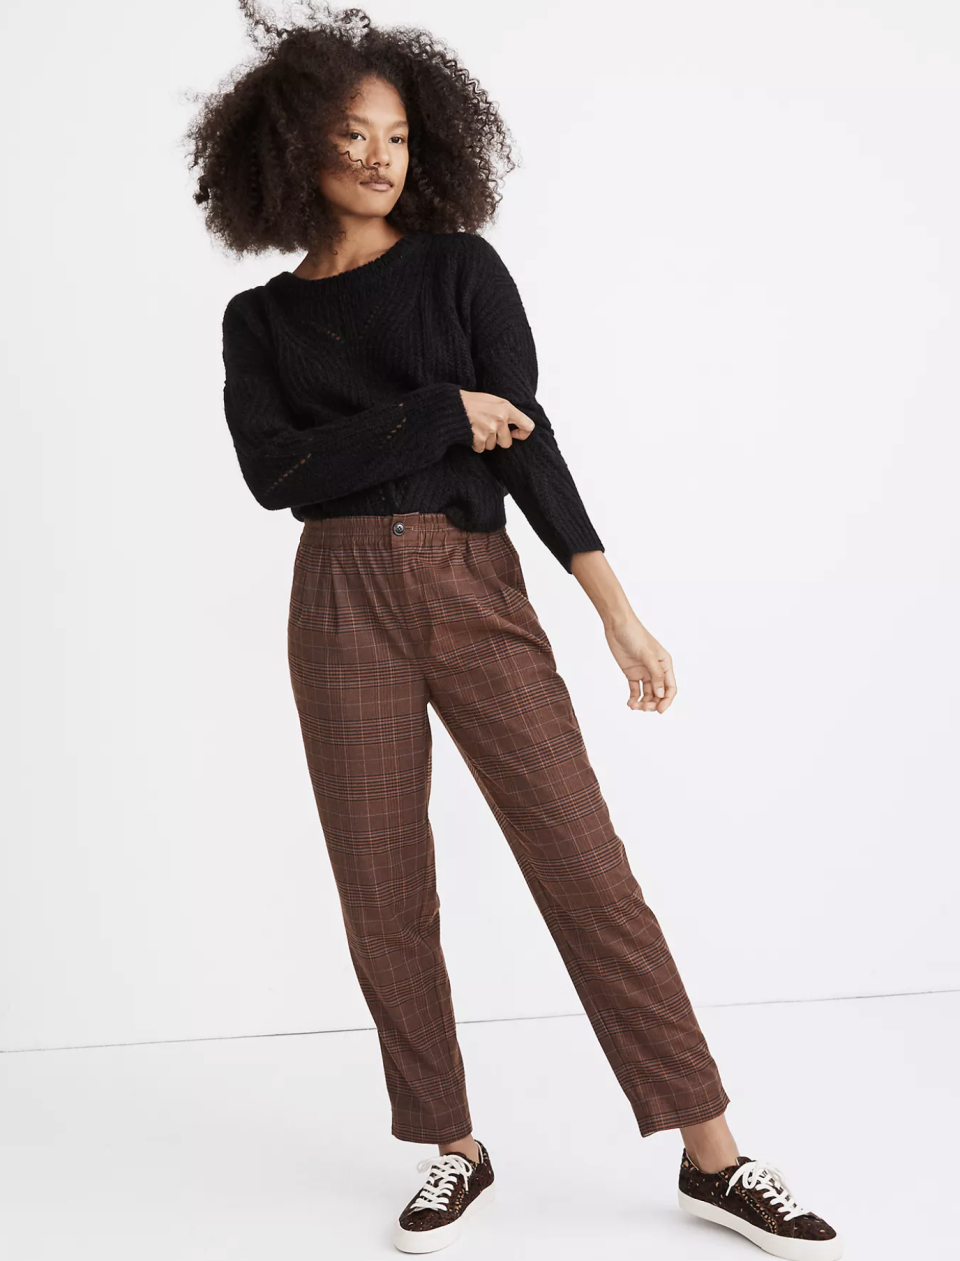 "<p><strong>Madewell</strong></p><p>madewell.com</p><p><strong>$98.00</strong></p><p><a href=""https://go.redirectingat.com?id=74968X1596630&url=https%3A%2F%2Fwww.madewell.com%2Fplaid-flannel-track-trousers-MC154.html&sref=https%3A%2F%2Fwww.seventeen.com%2Ffashion%2Fg34644503%2Fmadewell-black-friday-sales-2020%2F"" rel=""nofollow noopener"" target=""_blank"" data-ylk=""slk:Shop Now"" class=""link rapid-noclick-resp"">Shop Now</a></p><p>I wasn't planning on shopping this sale for myself, but then I saw these plaid pants...</p>"